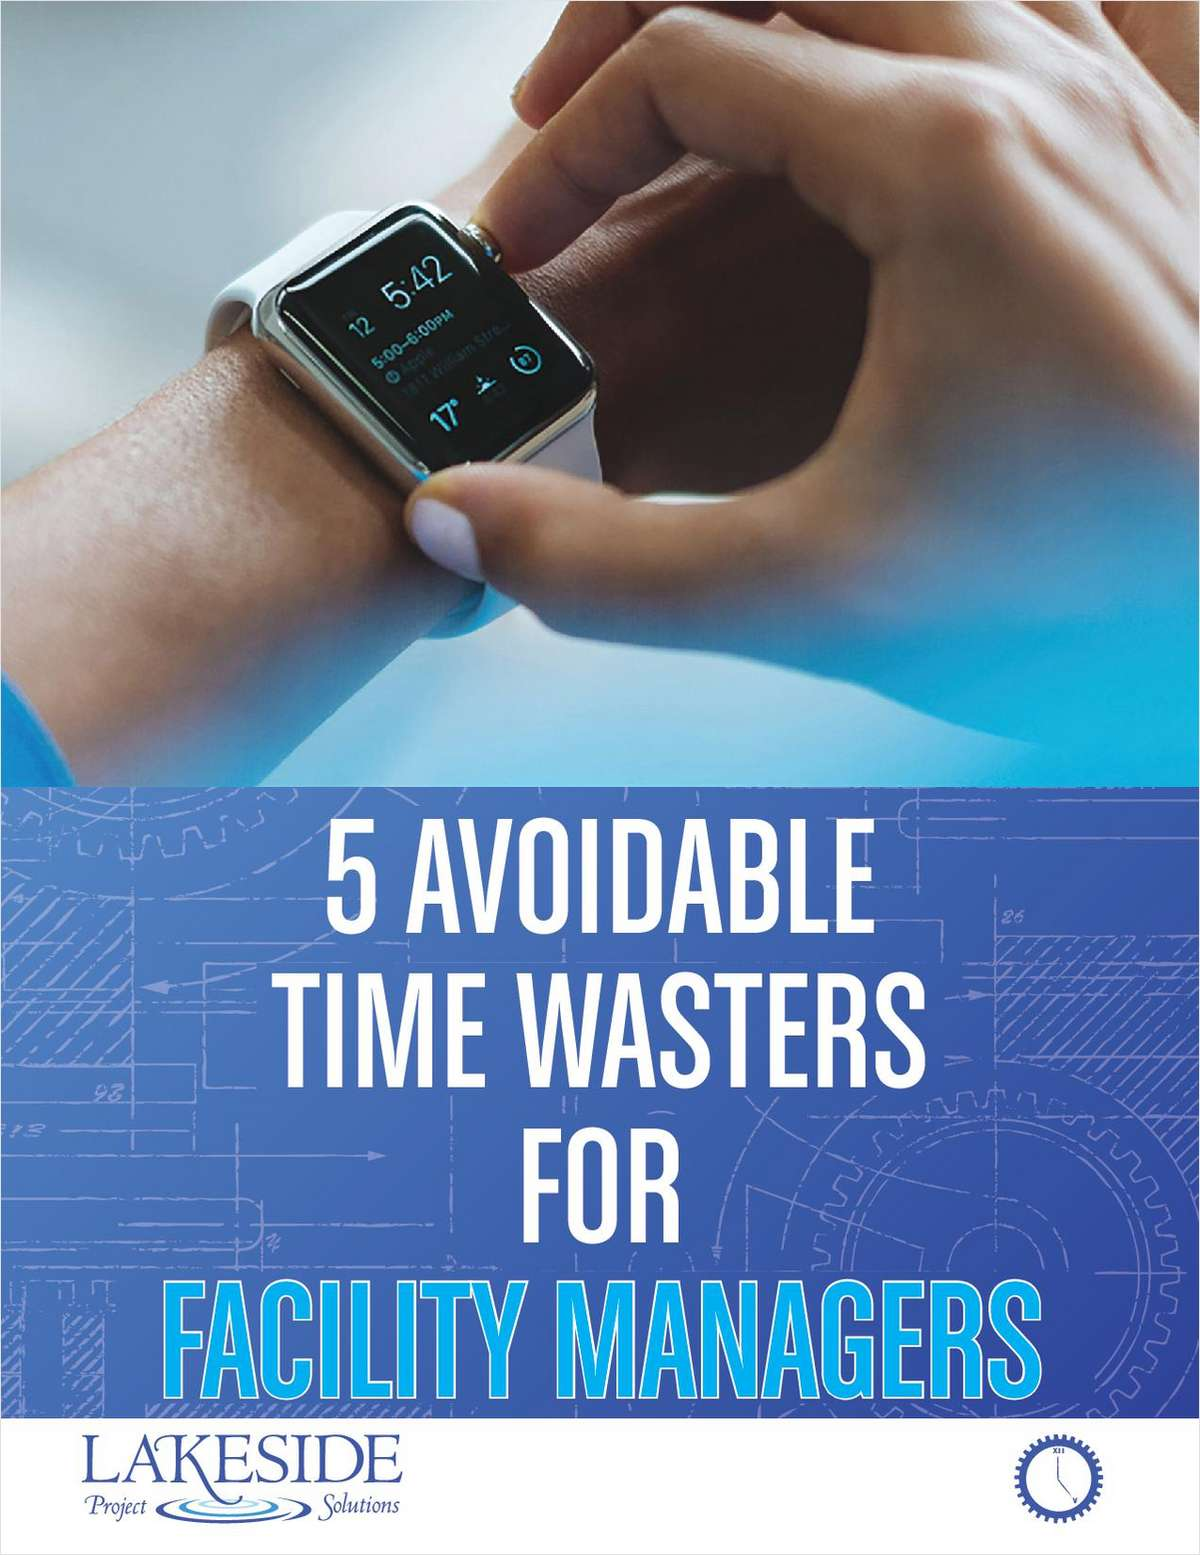 5 Avoidable Time Wasters for Facility Managers